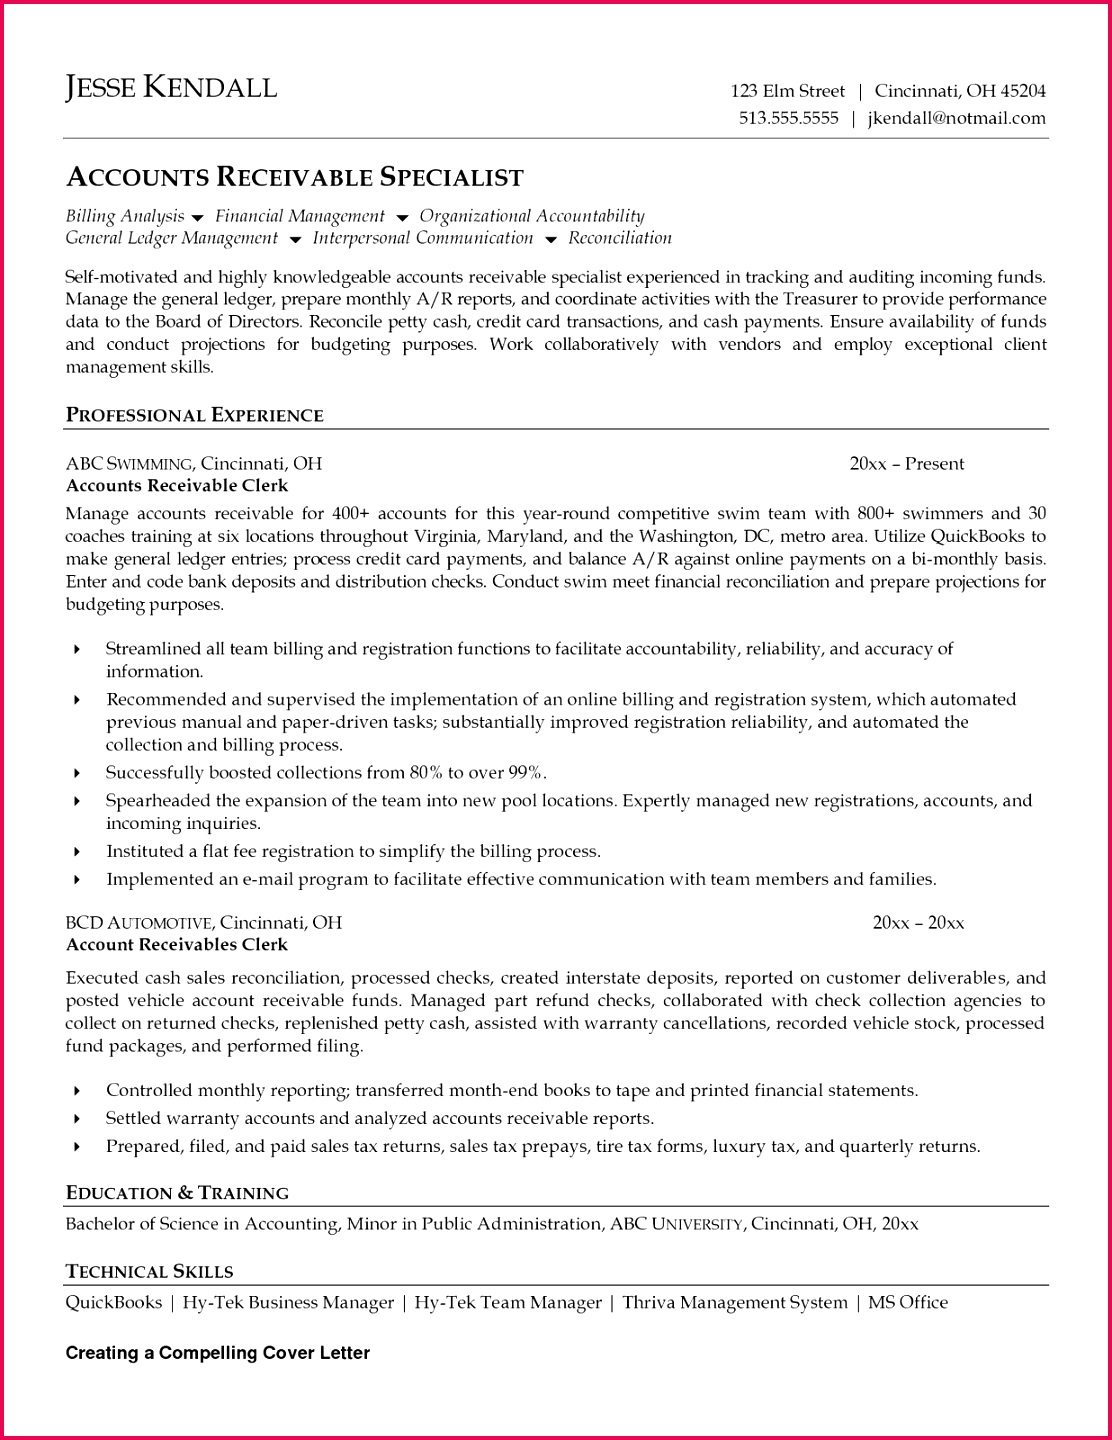 general ledger experience resume awesome cota resume template beautiful fishing resume 0d of general ledger experience